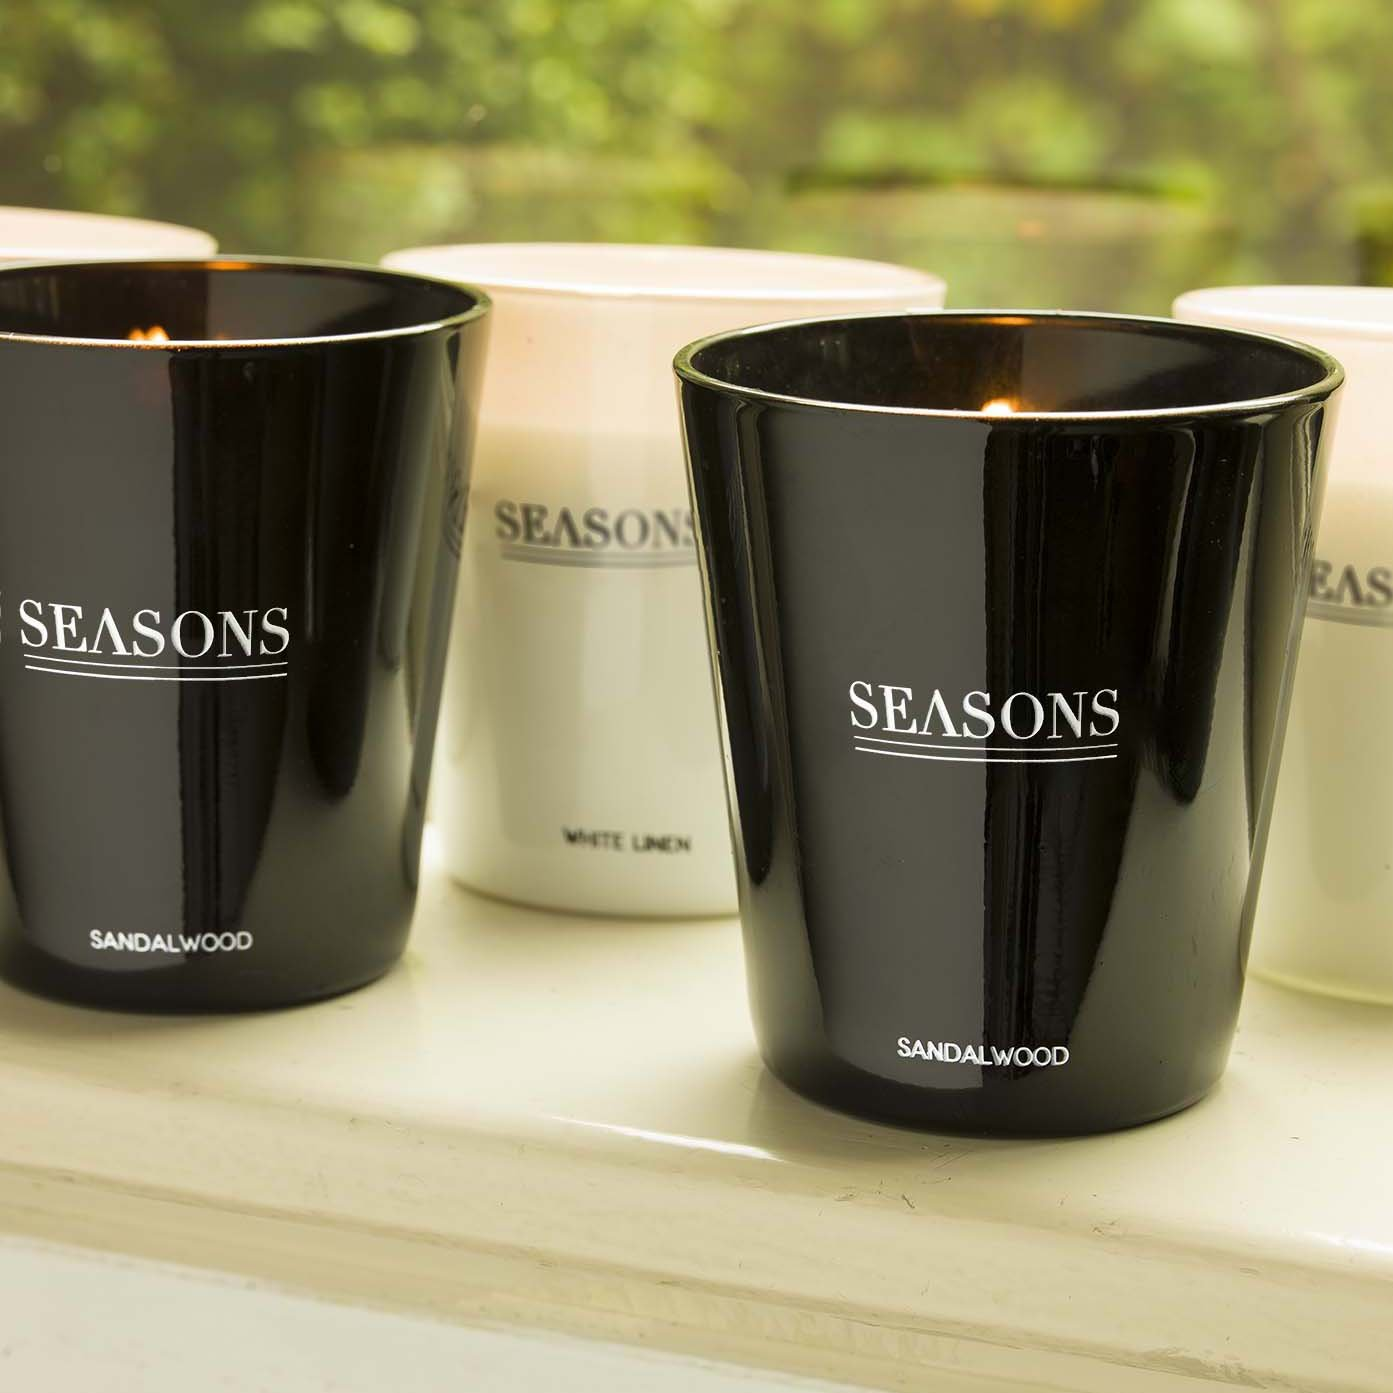 Seasons Lunar scented candle